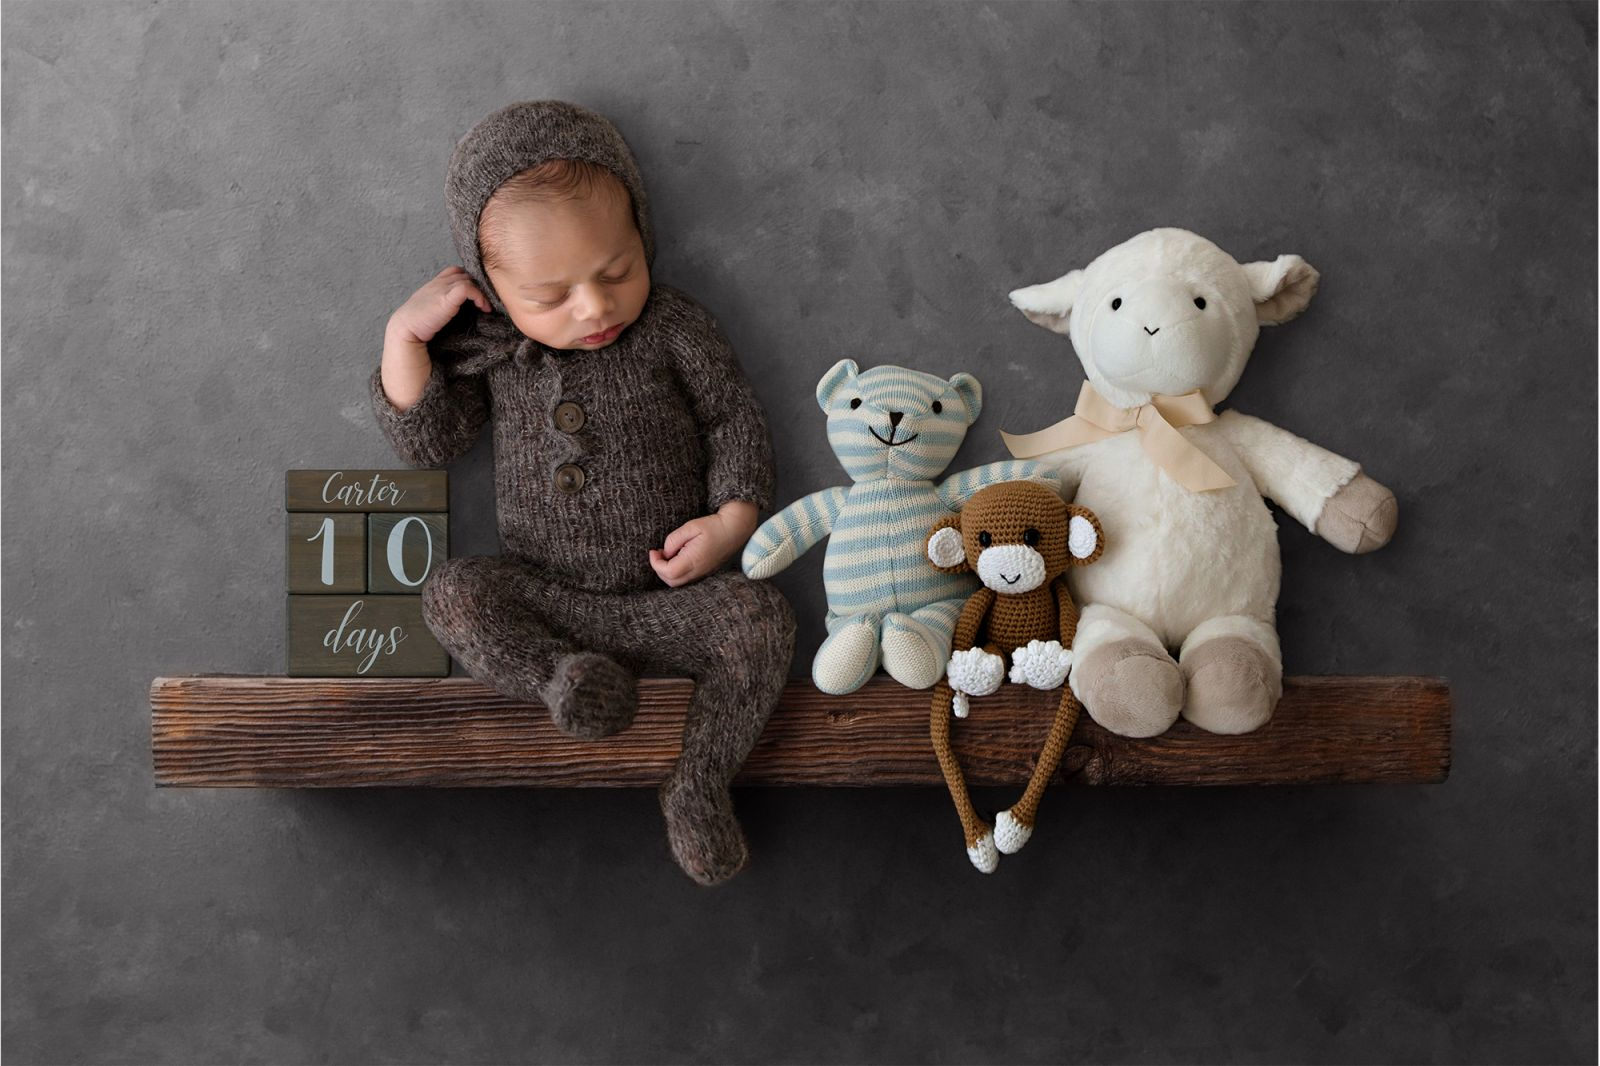 newborn composite baby on shelf